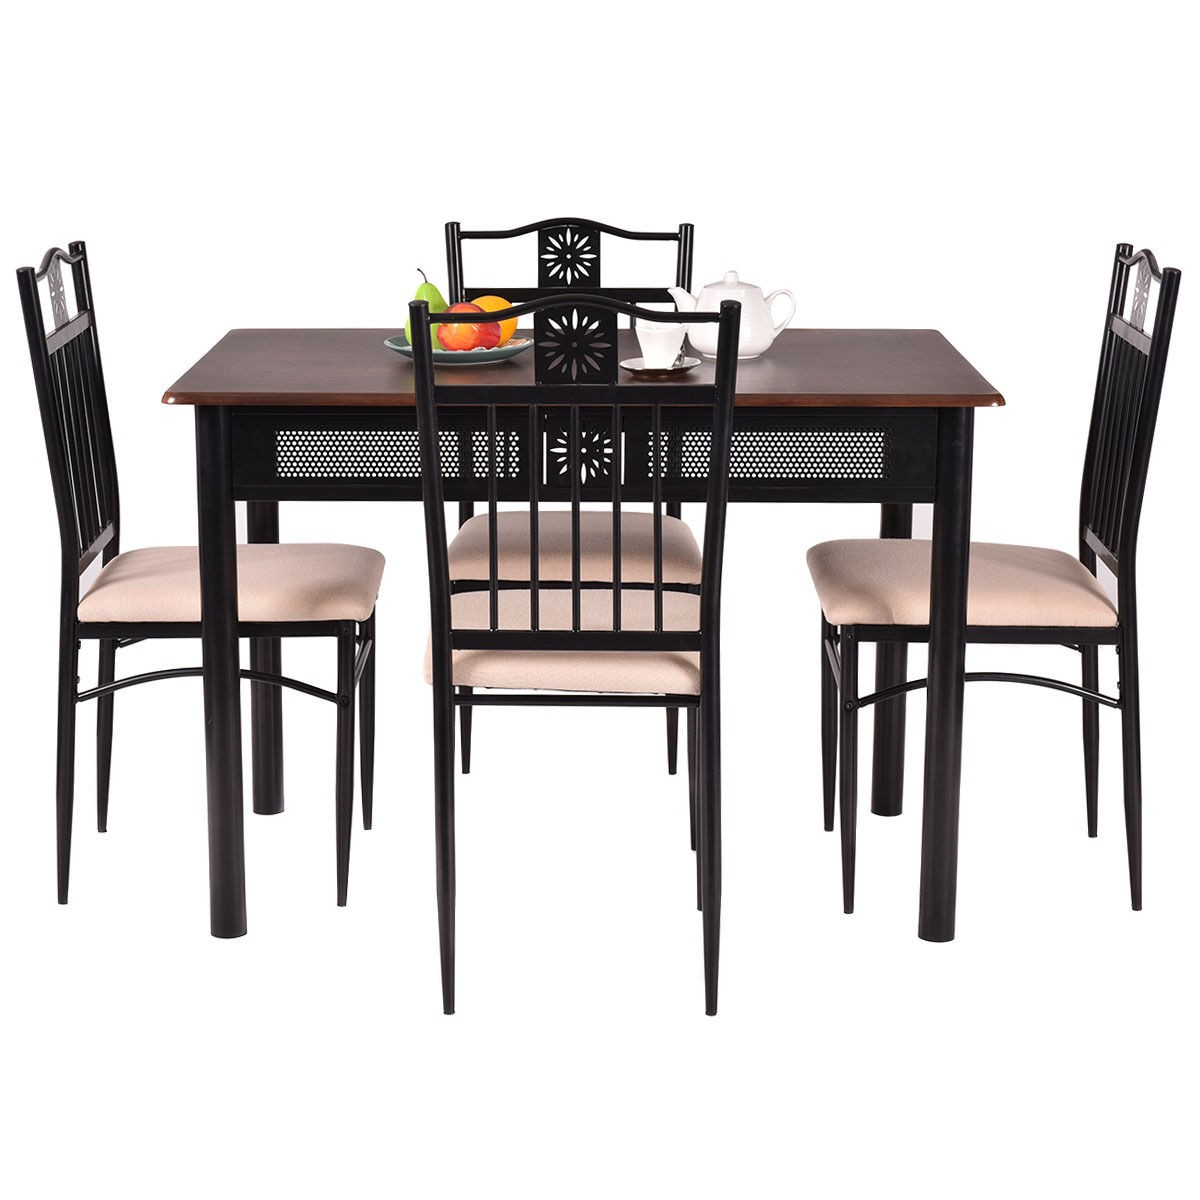 Table And Chair Dining Sets: 5 Piece Dining Set Wood Metal Table And 4 Chairs Kitchen